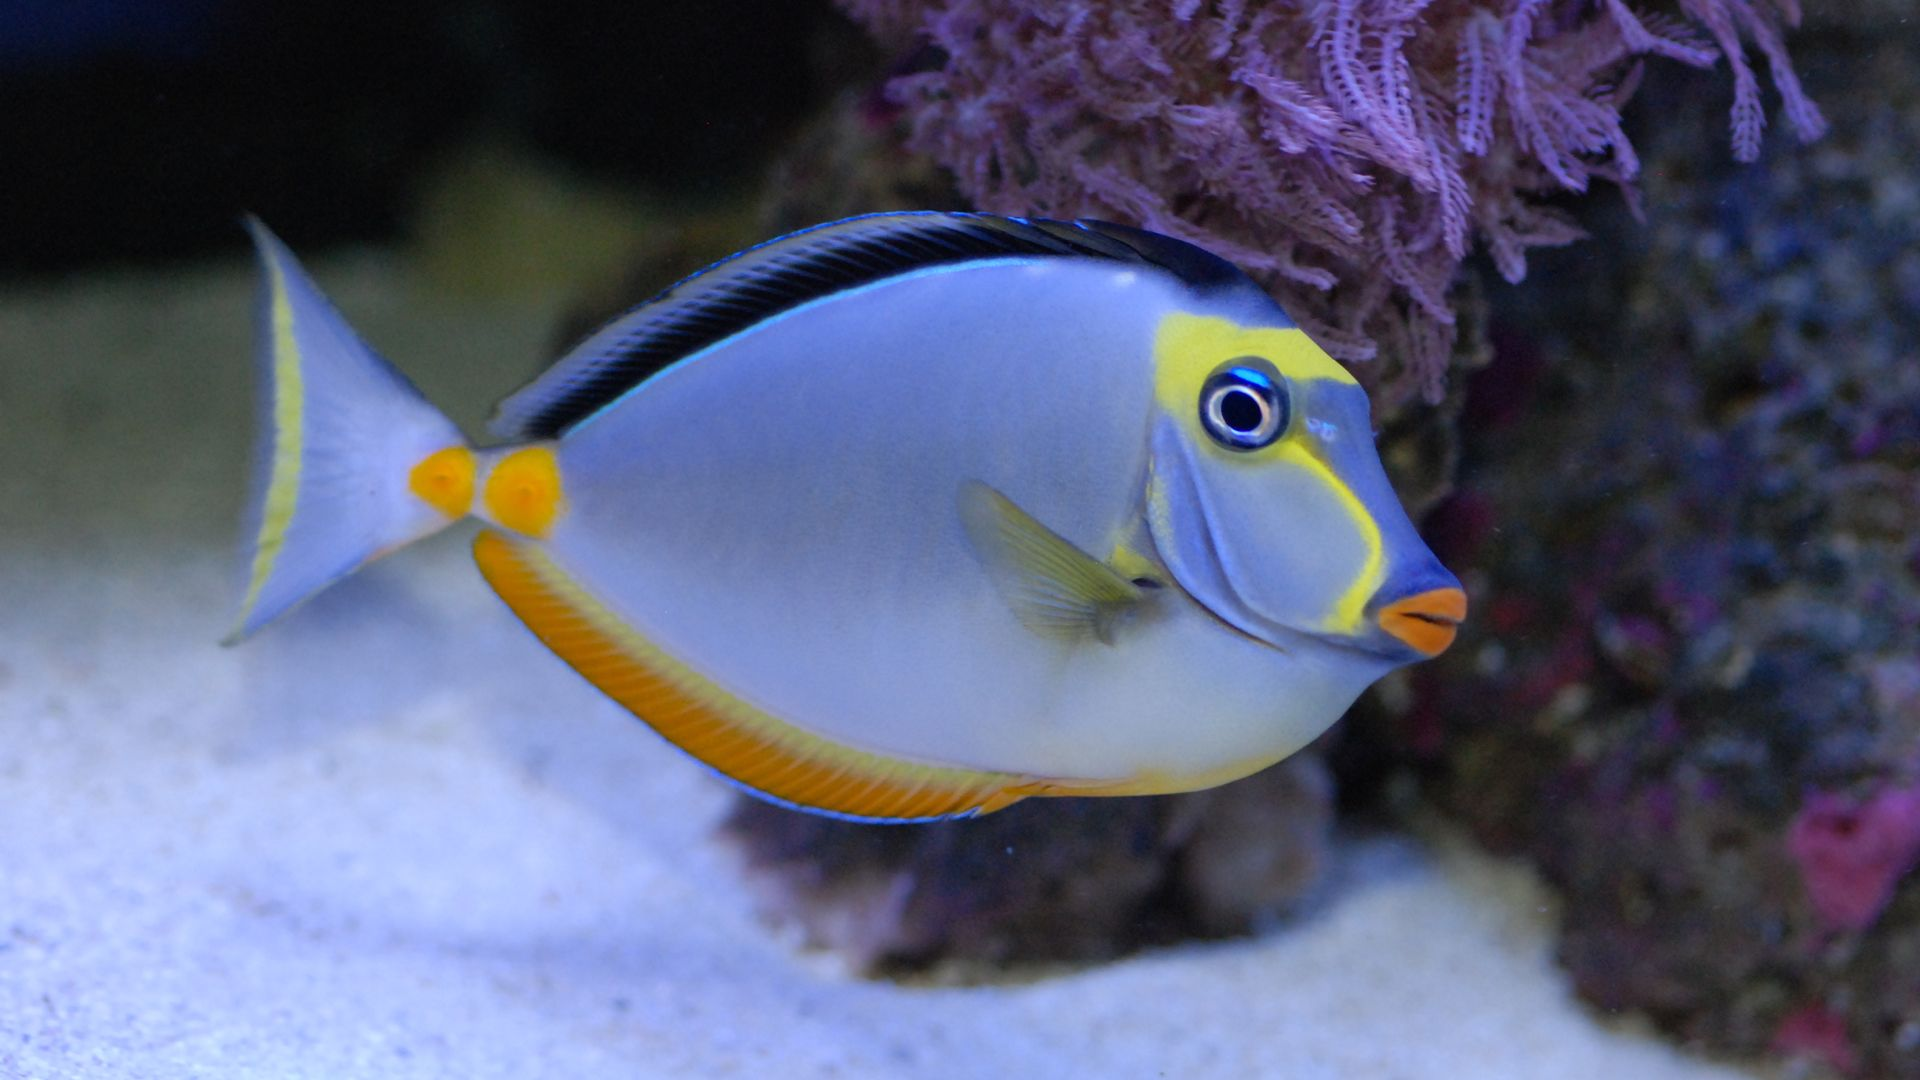 Tang fish - photo#40